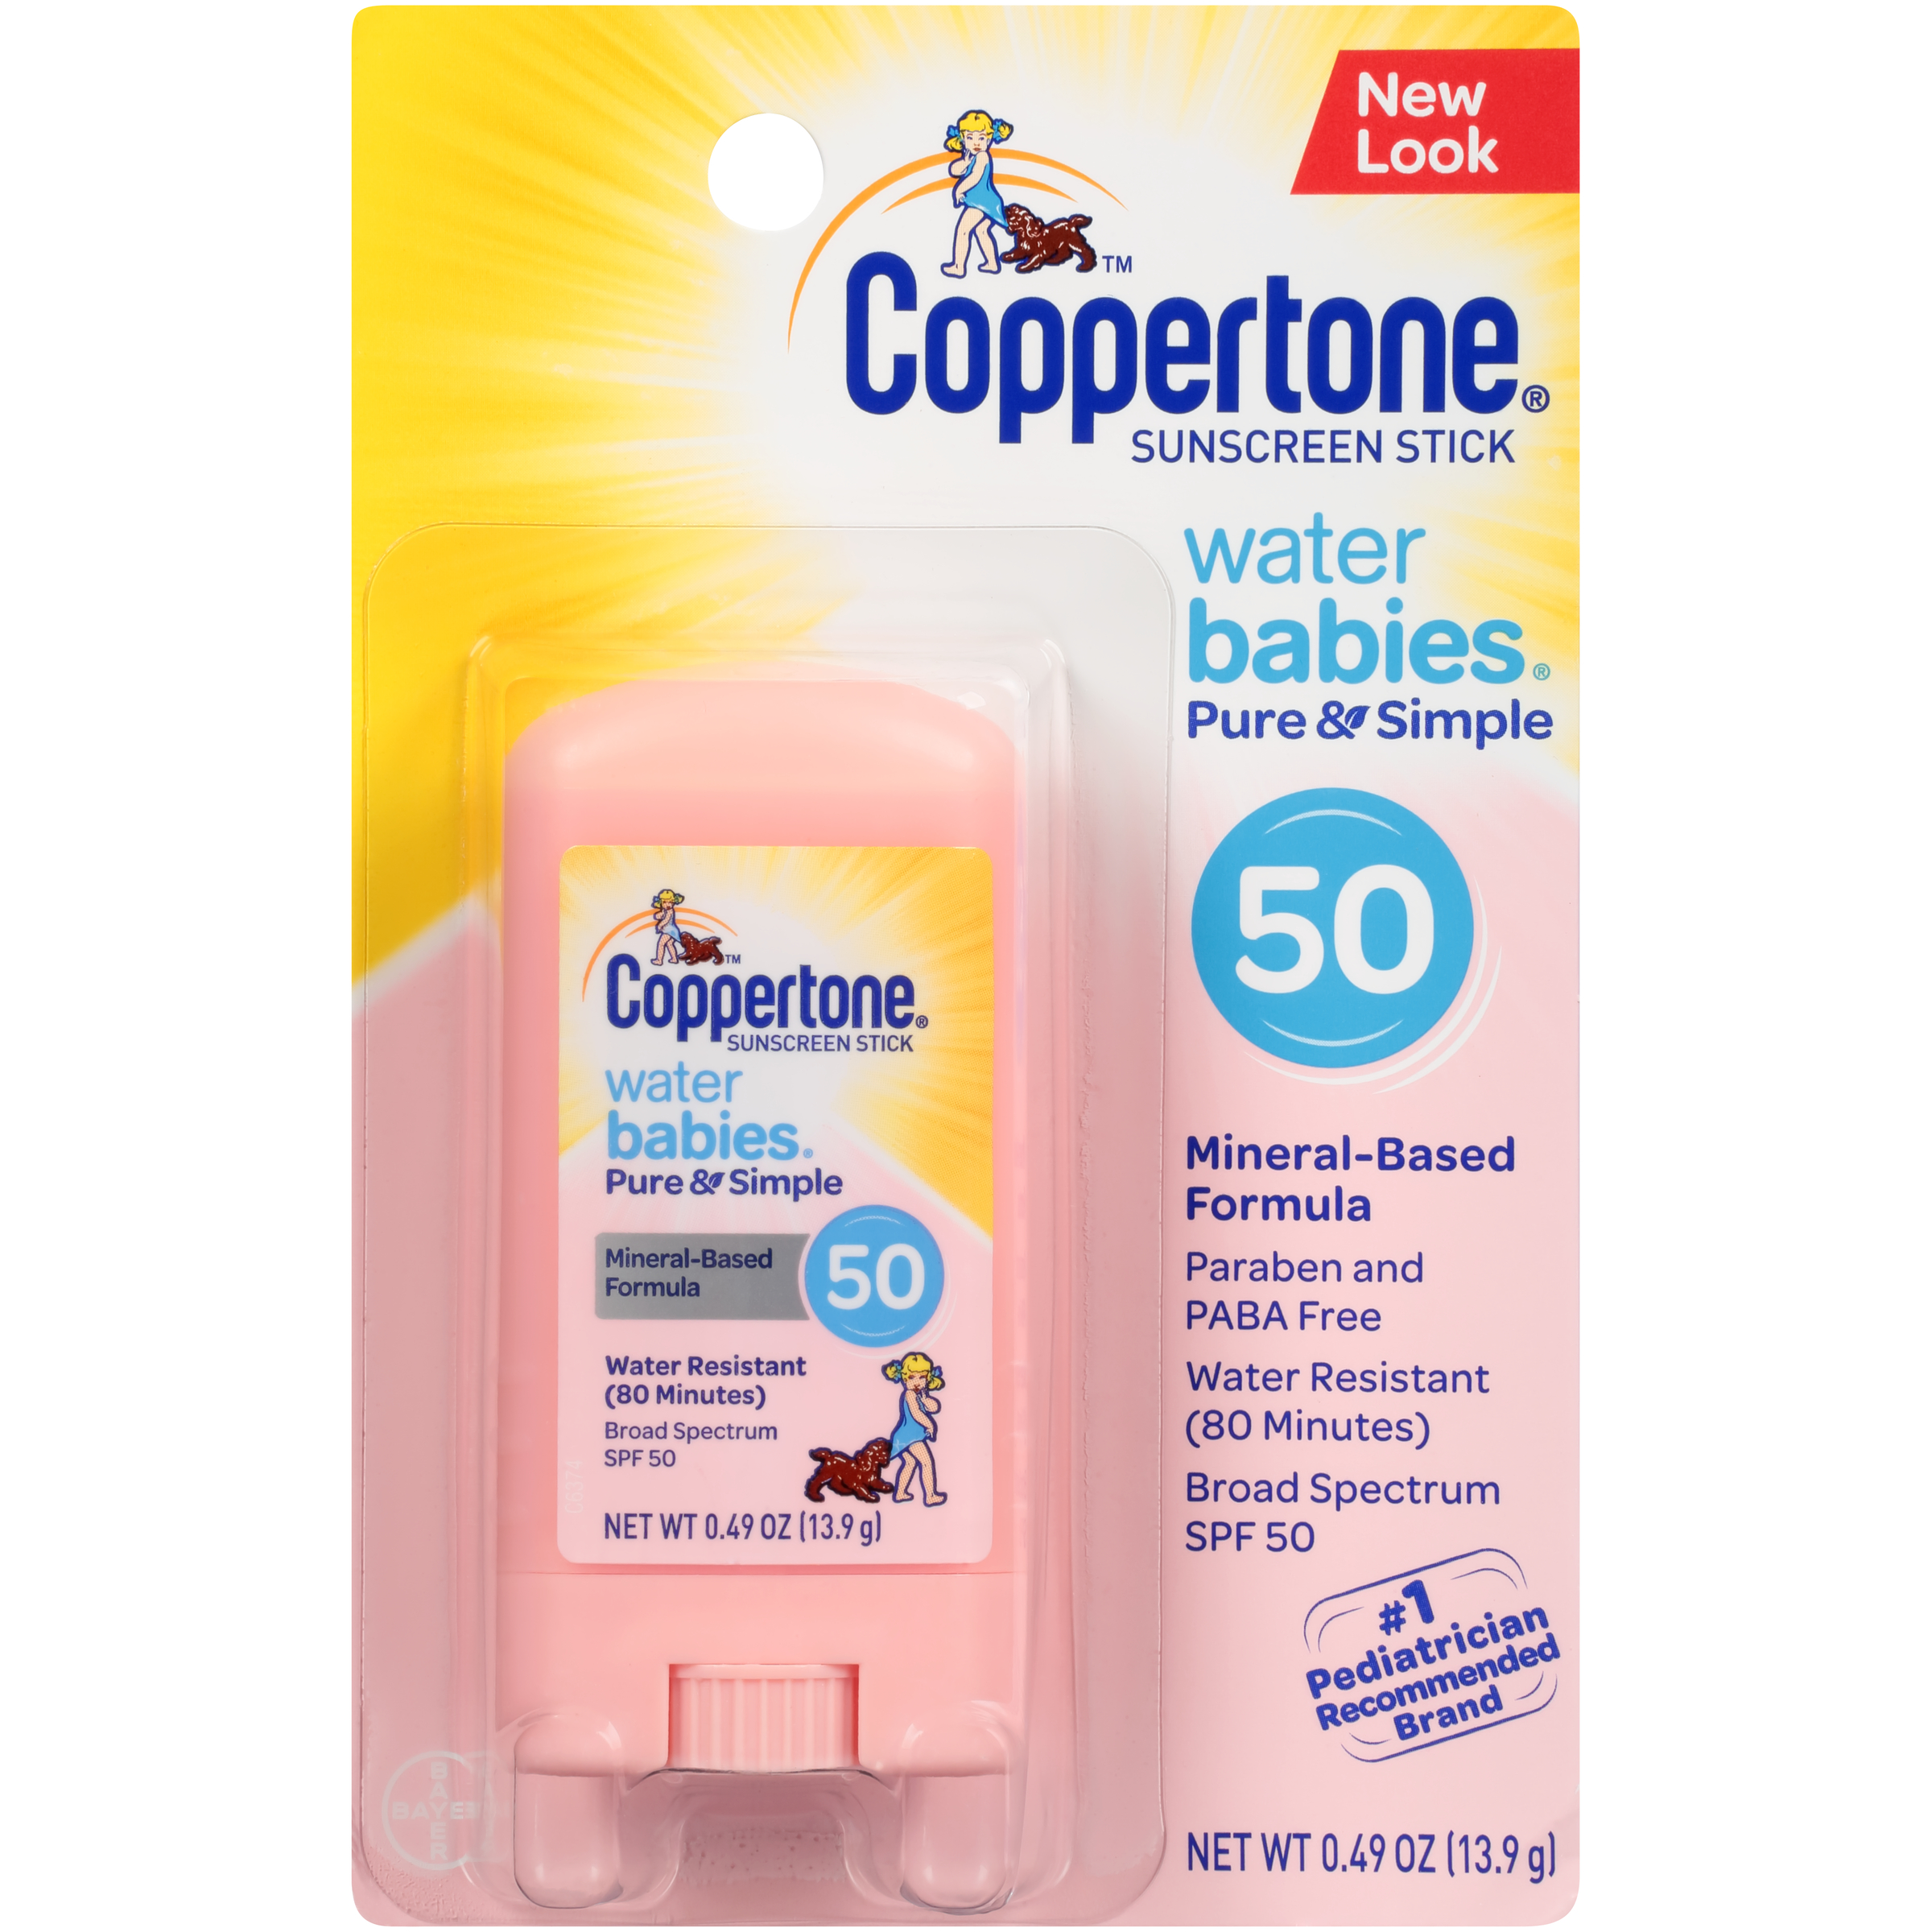 Coppertone WaterBABIES Sunscreen Pure & Simple Stick SPF 50 .5 oz ...